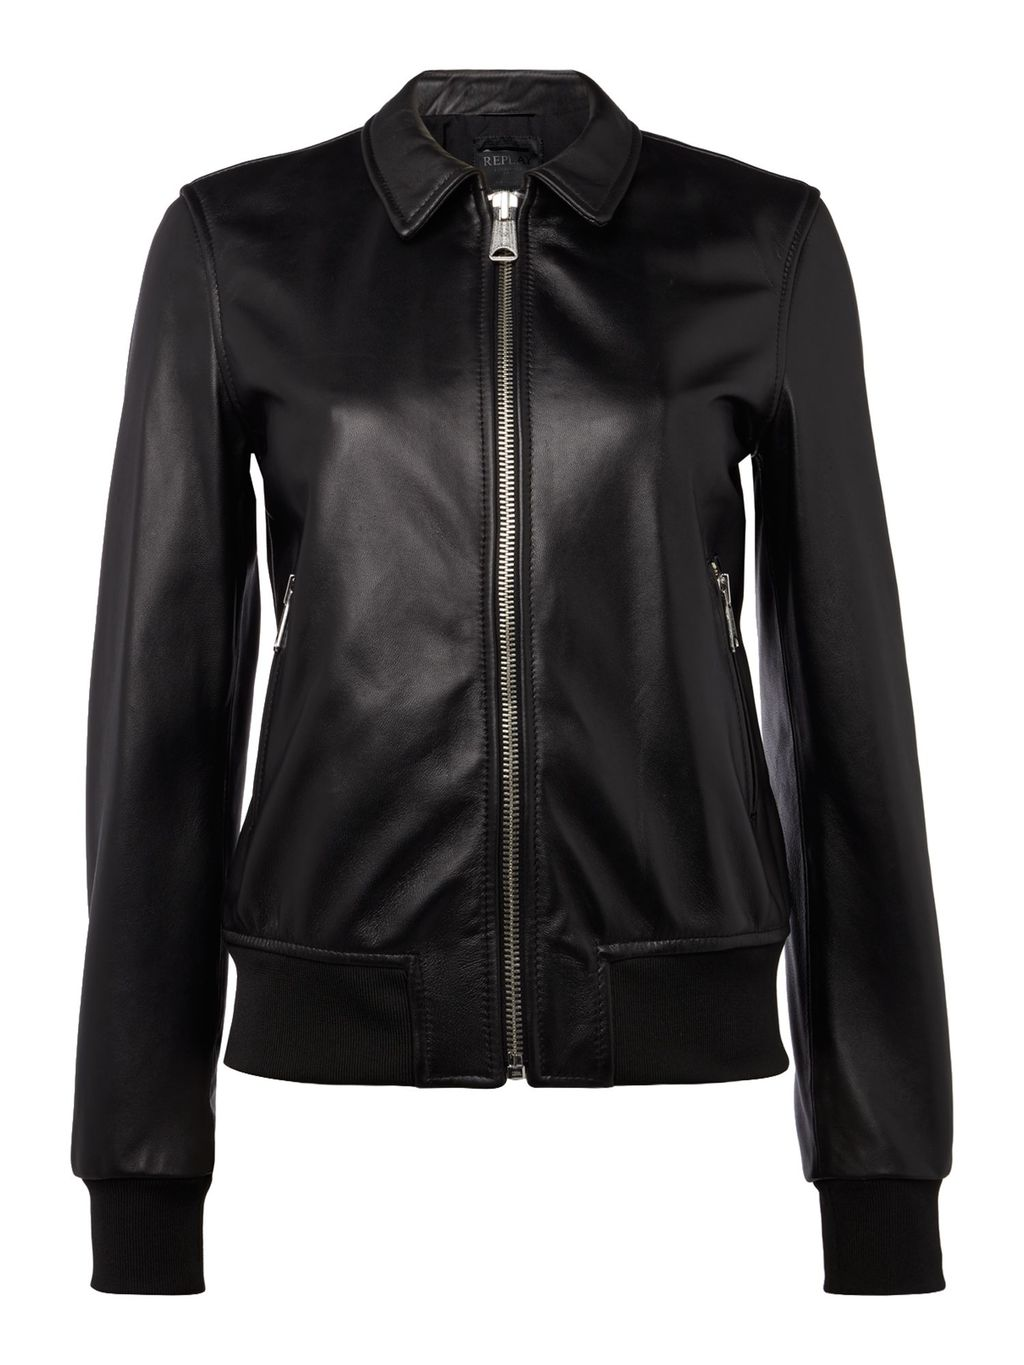 Classic Leather Jacket, Black - pattern: plain; collar: standard biker; fit: slim fit; style: bomber; predominant colour: black; occasions: casual, creative work; length: standard; fibres: leather - 100%; sleeve length: long sleeve; sleeve style: standard; texture group: leather; collar break: high/illusion of break when open; pattern type: fabric; season: s/s 2016; wardrobe: basic